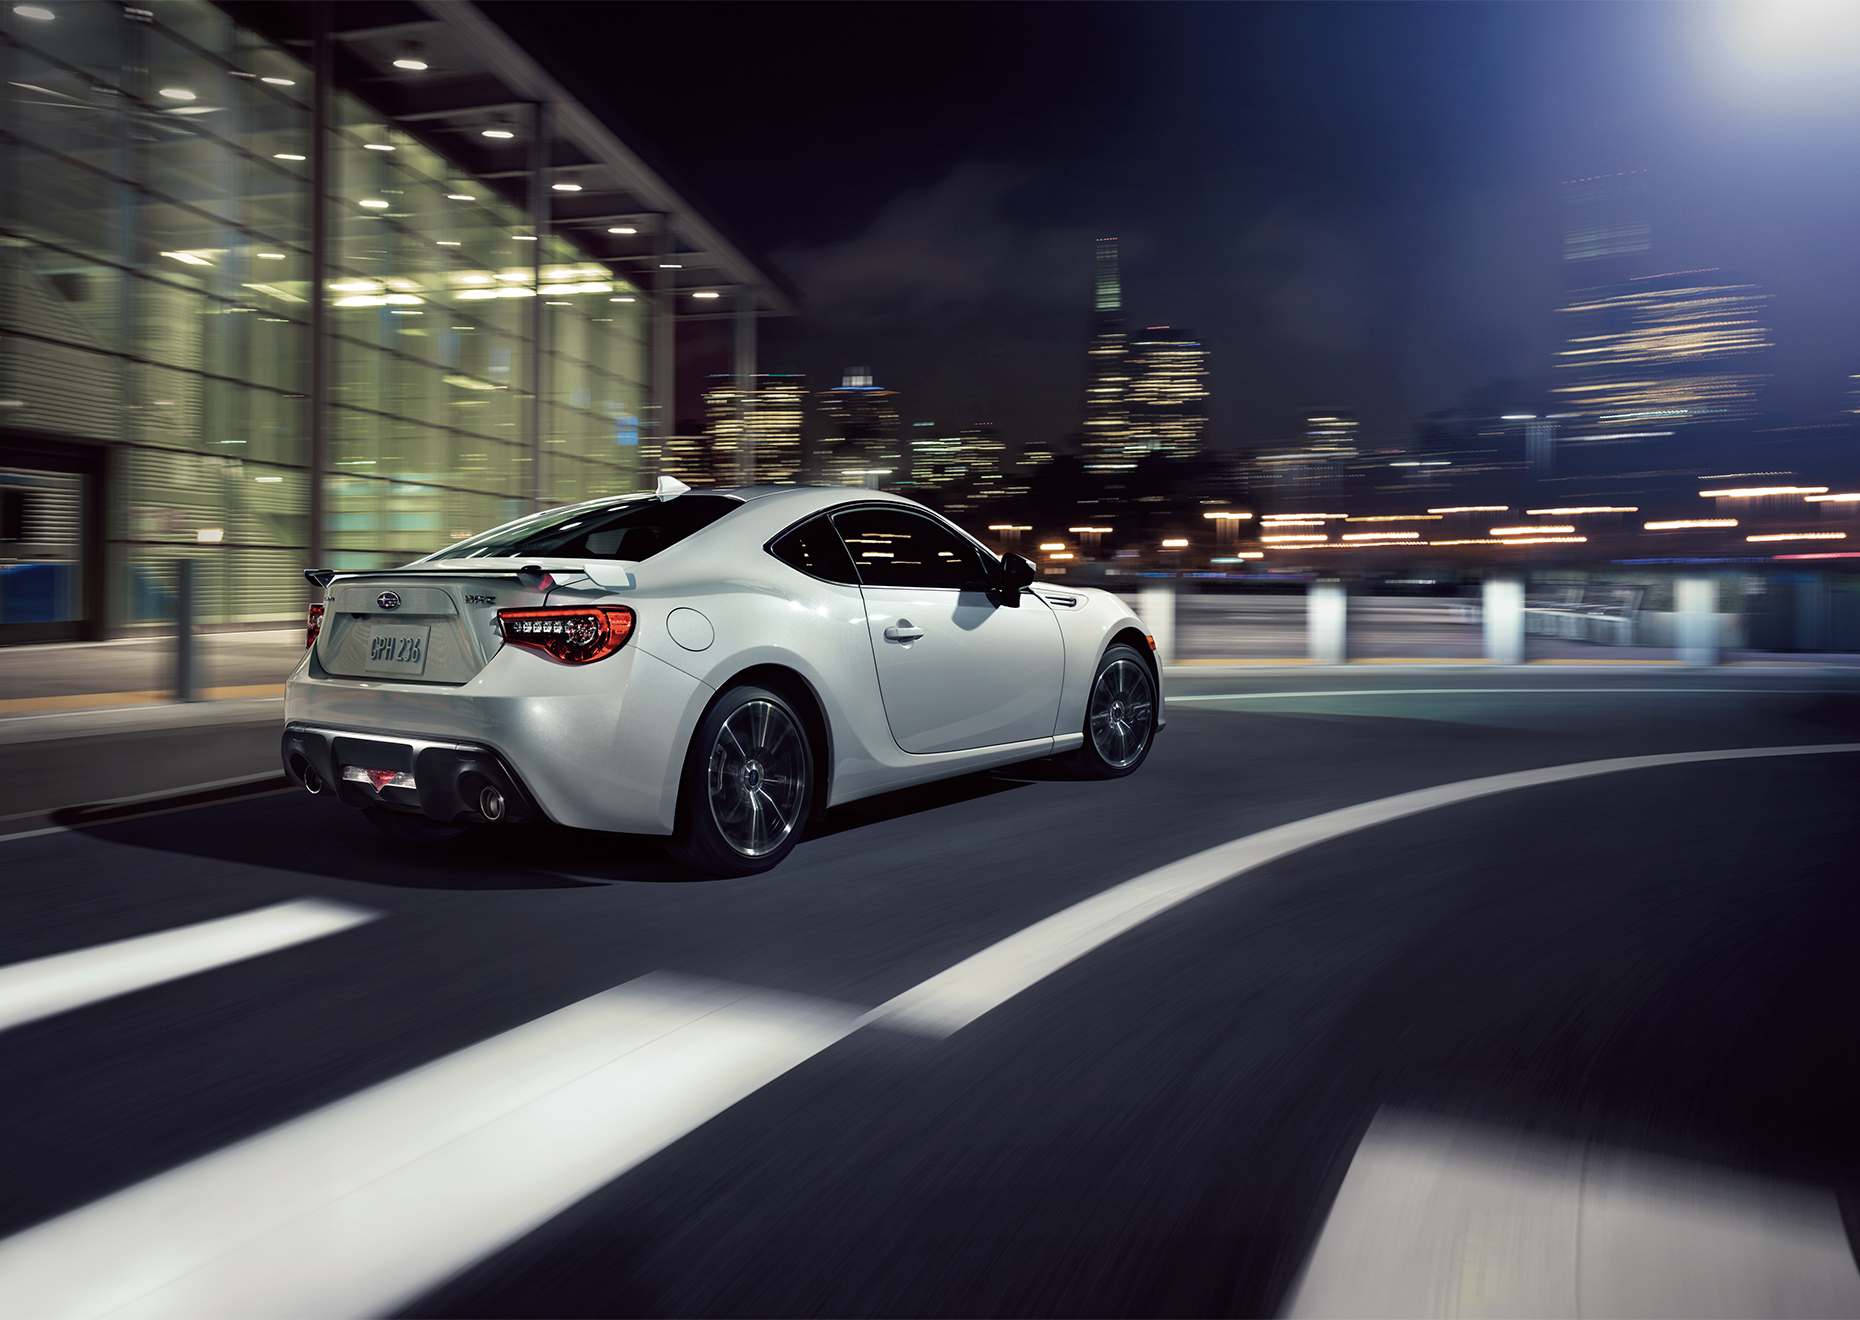 BRZ_white_rig_night